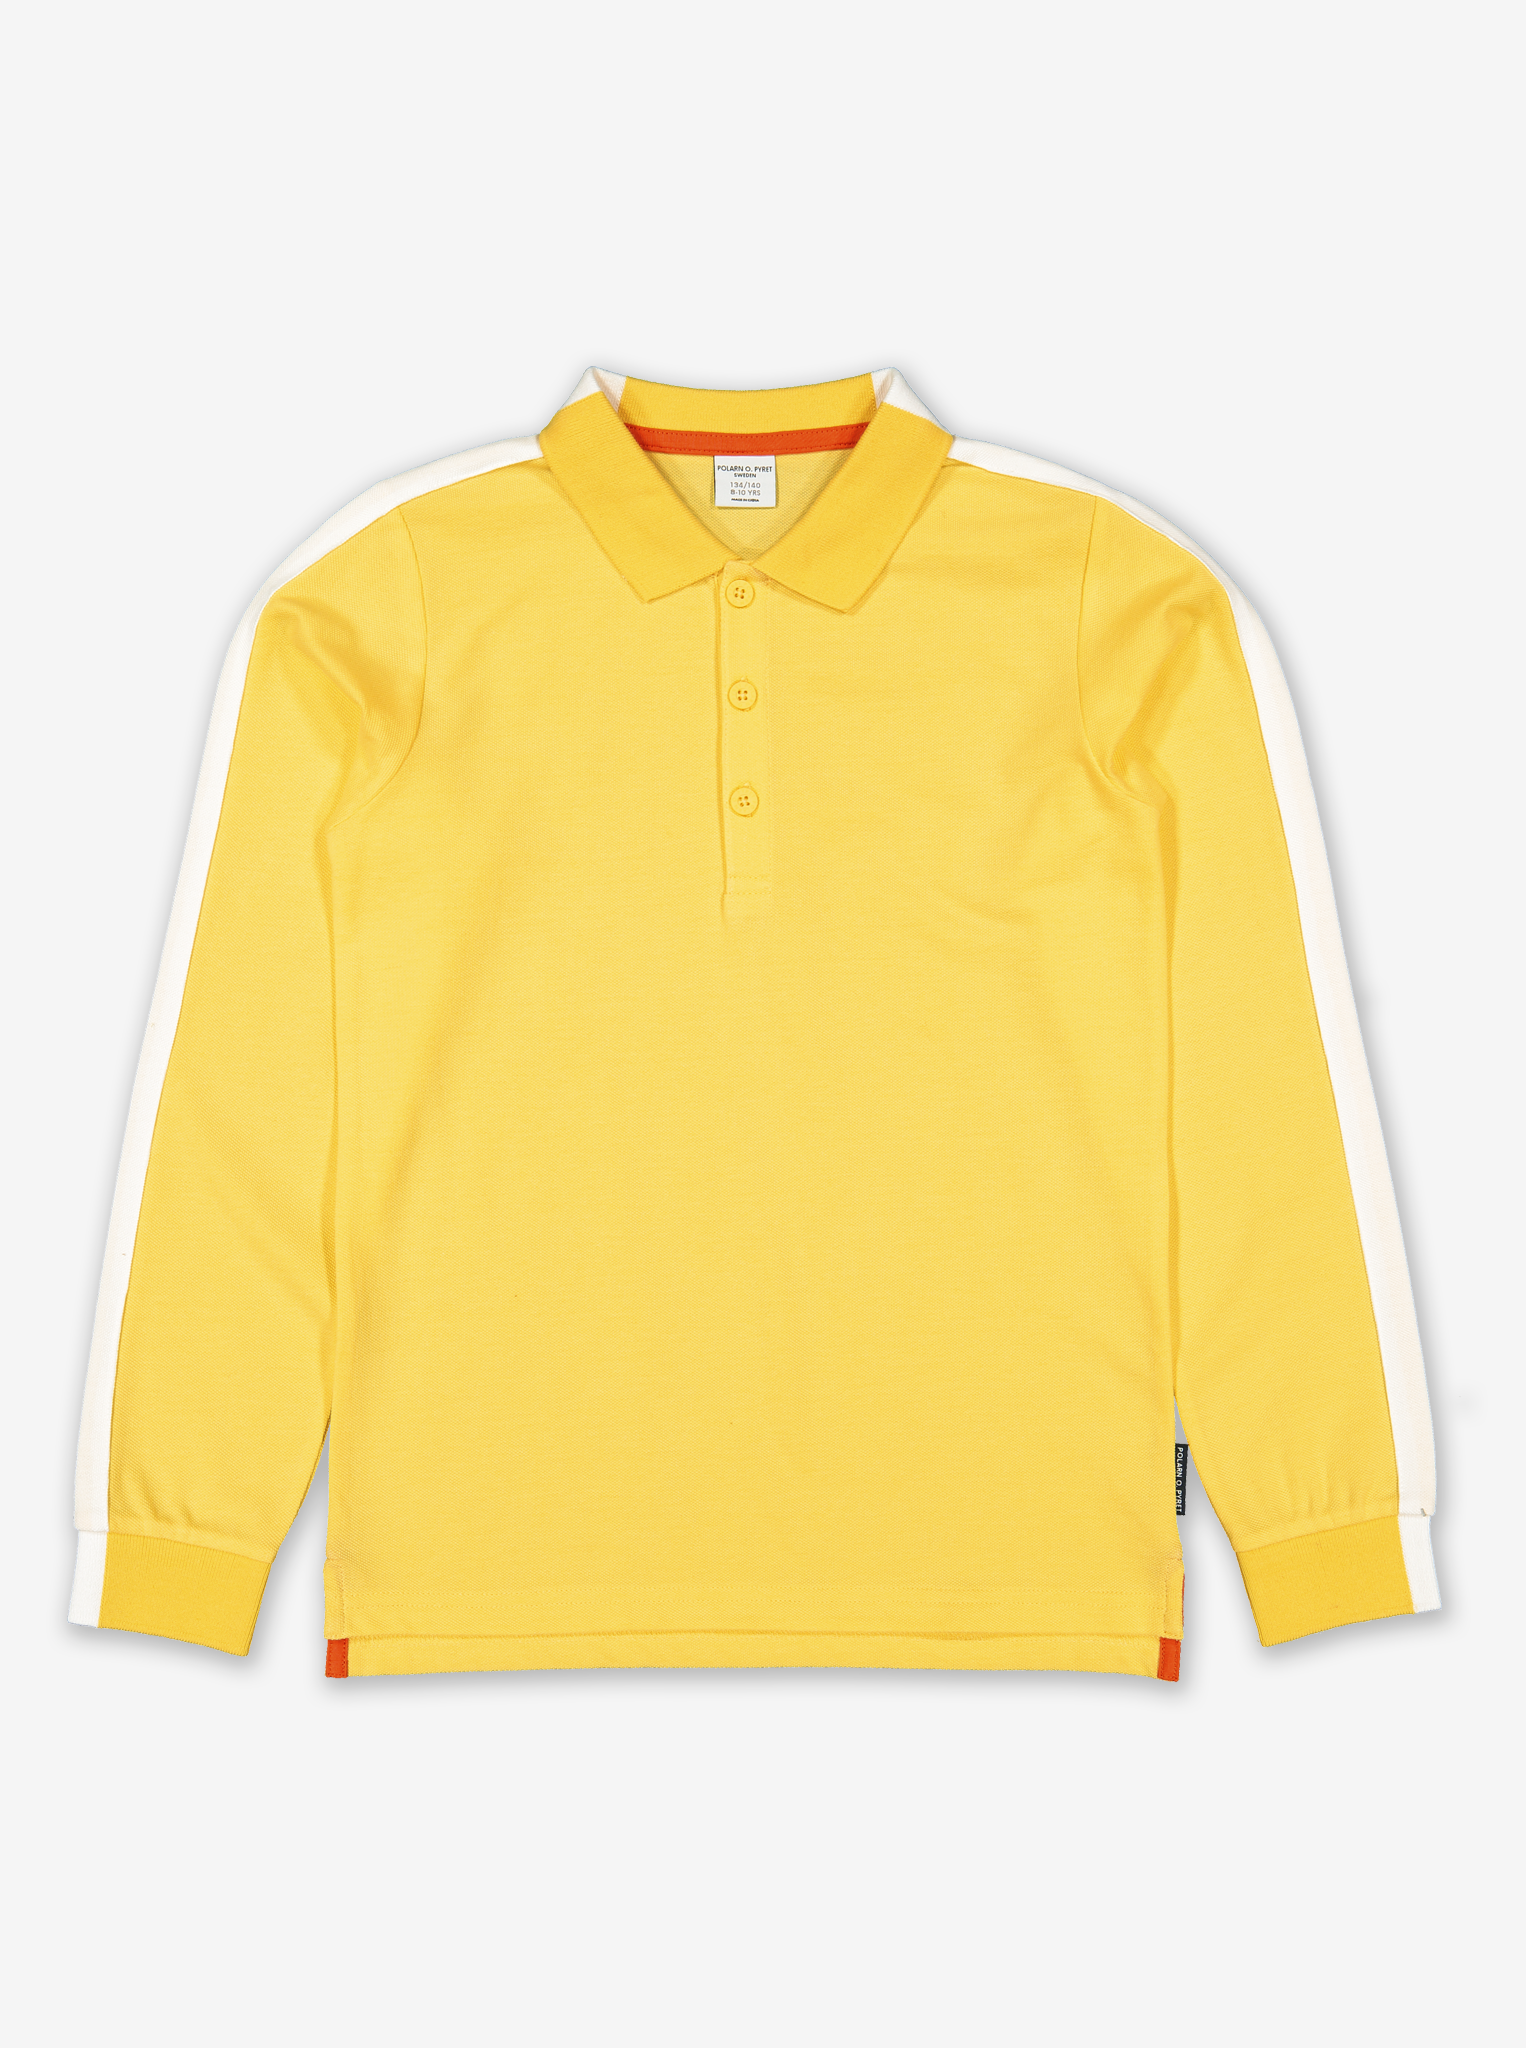 Long Sleeve Kids Polo Top-Boy-6-12y-Yellow